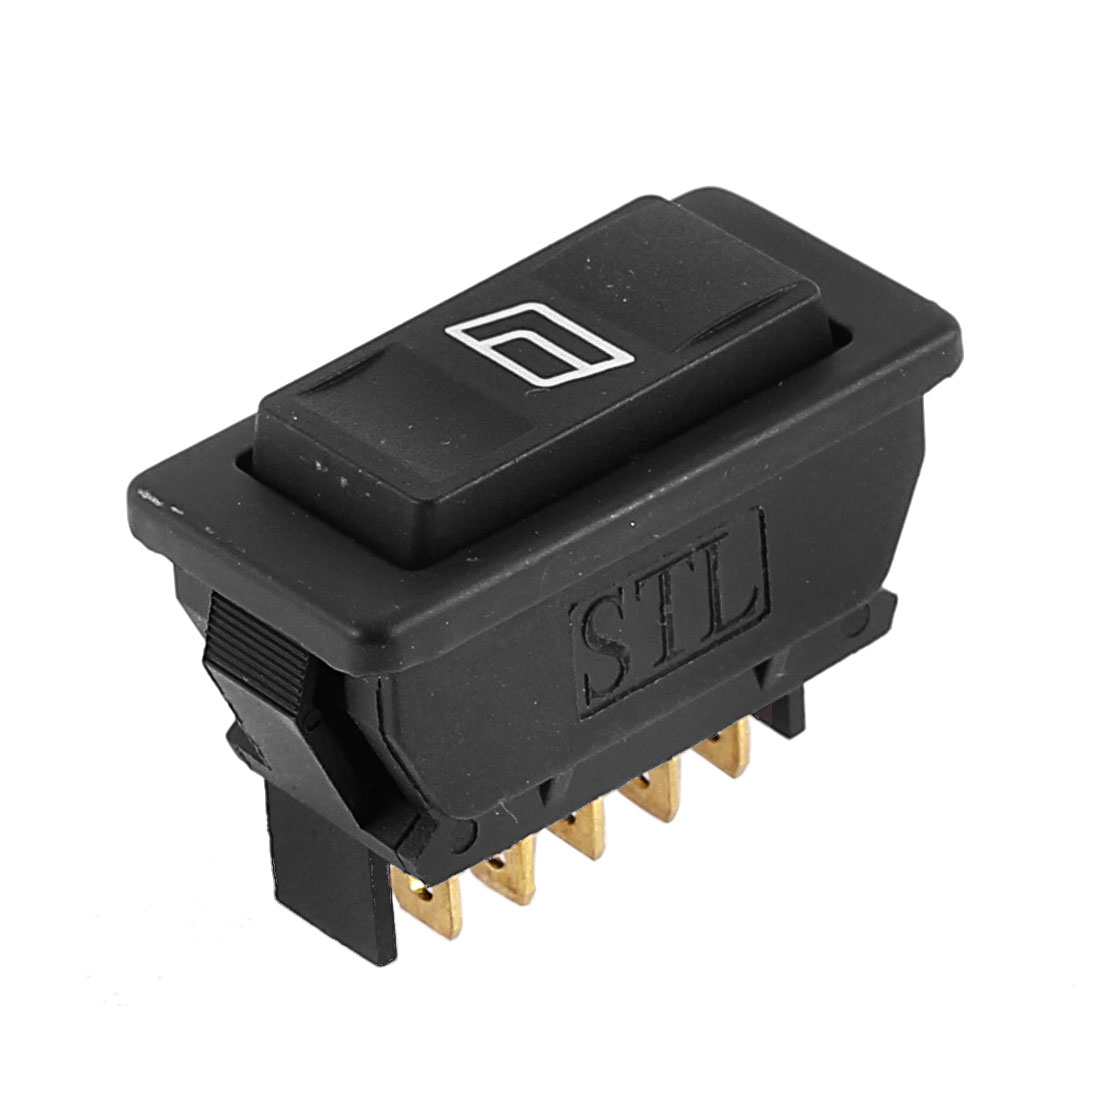 DC 12V 20A 5 Pins Momentary Power Window Switch for Automobile